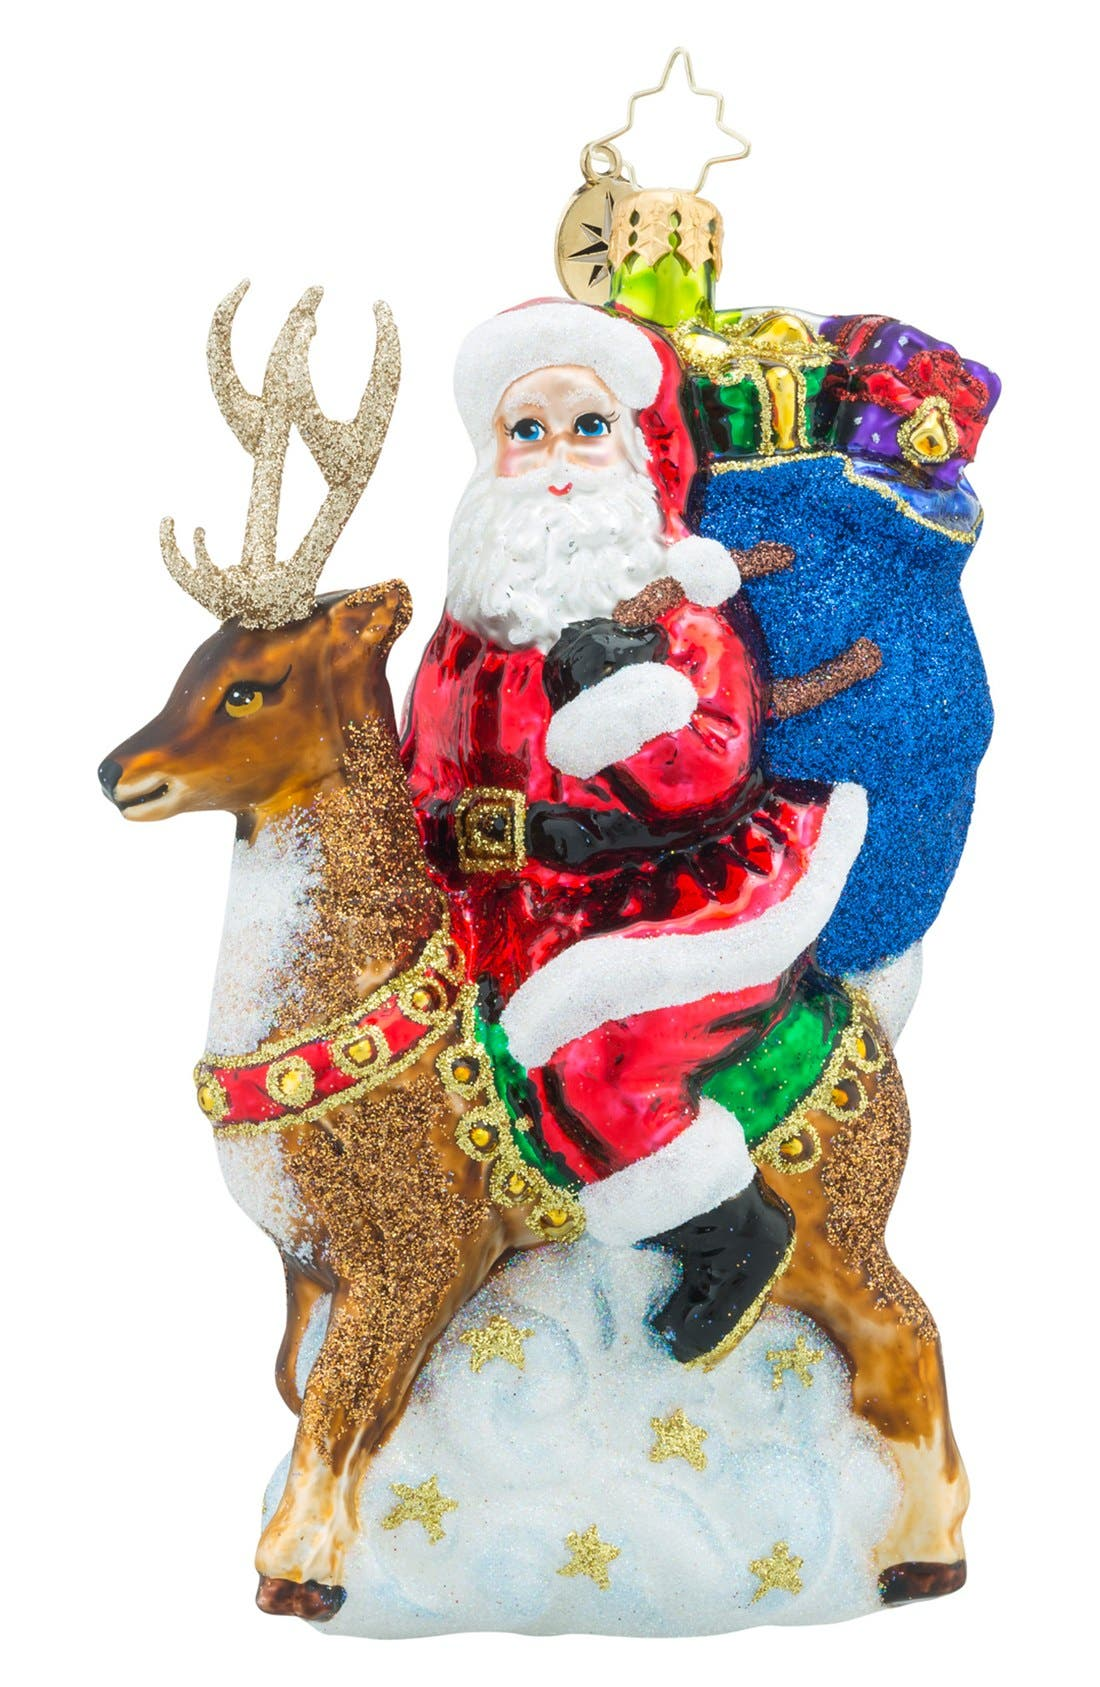 'Love My Ride' Santa & Reindeer Ornament,                             Main thumbnail 1, color,                             600